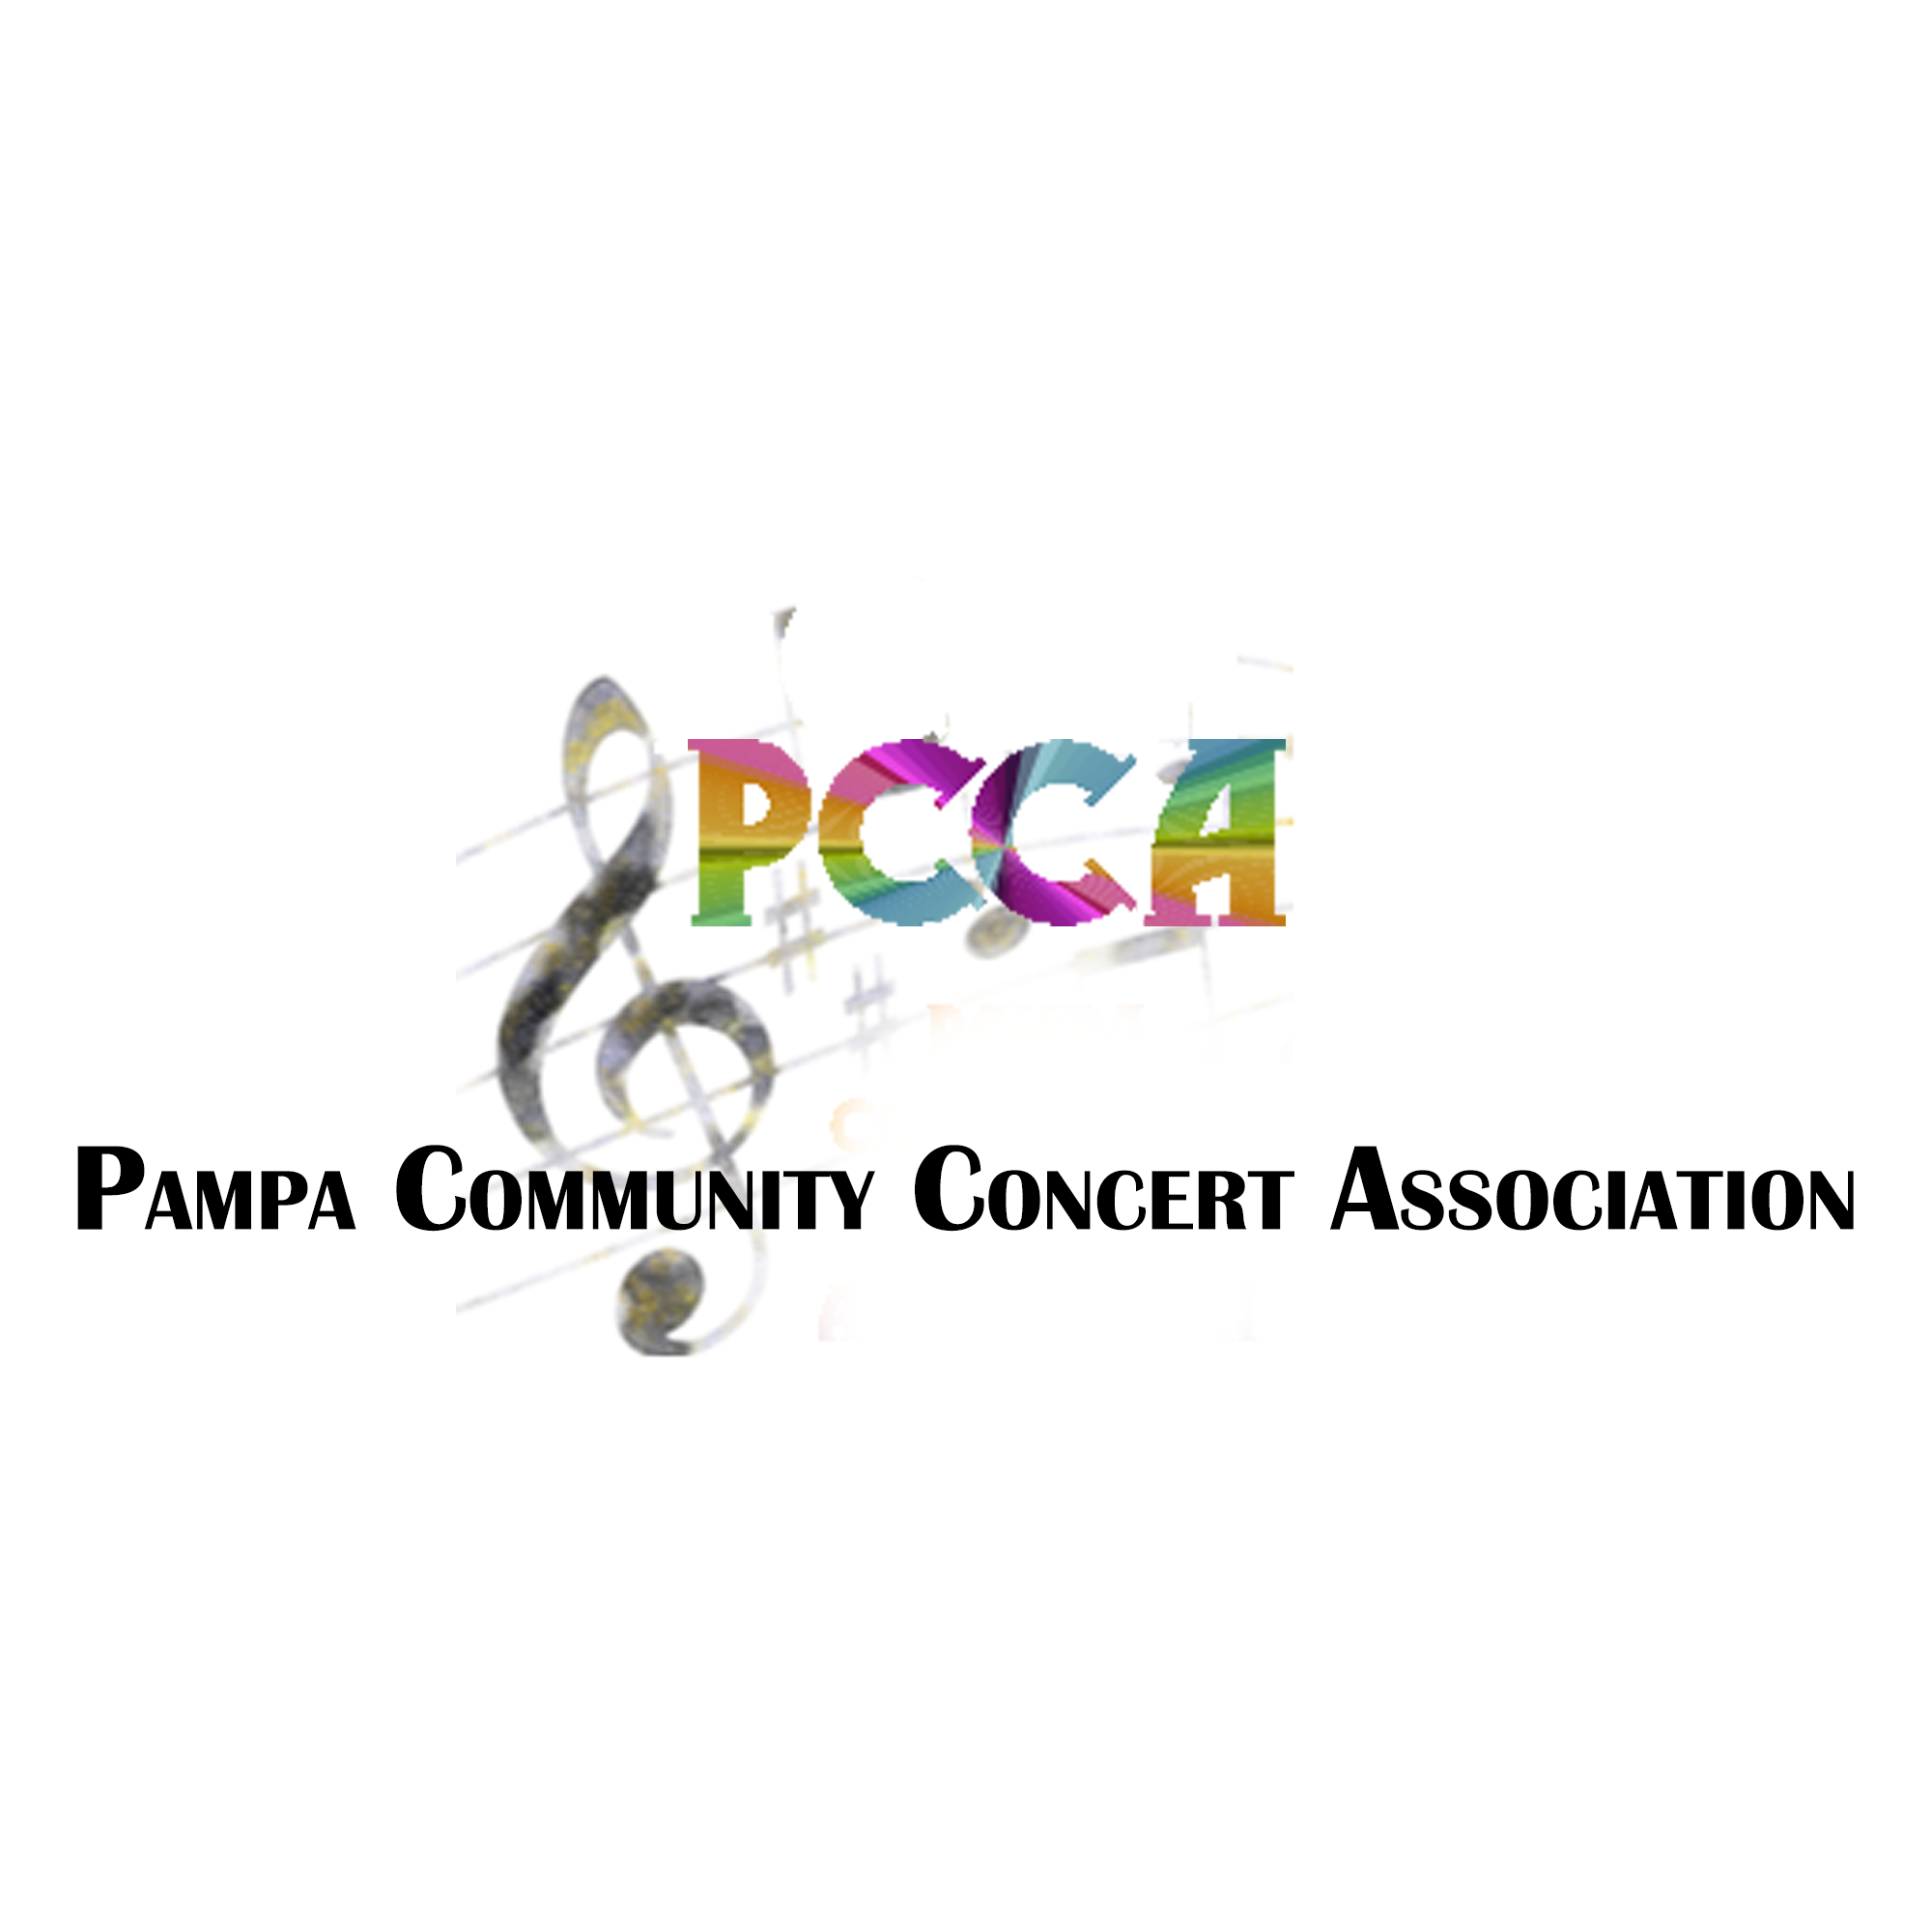 Pampa Community Concert Association